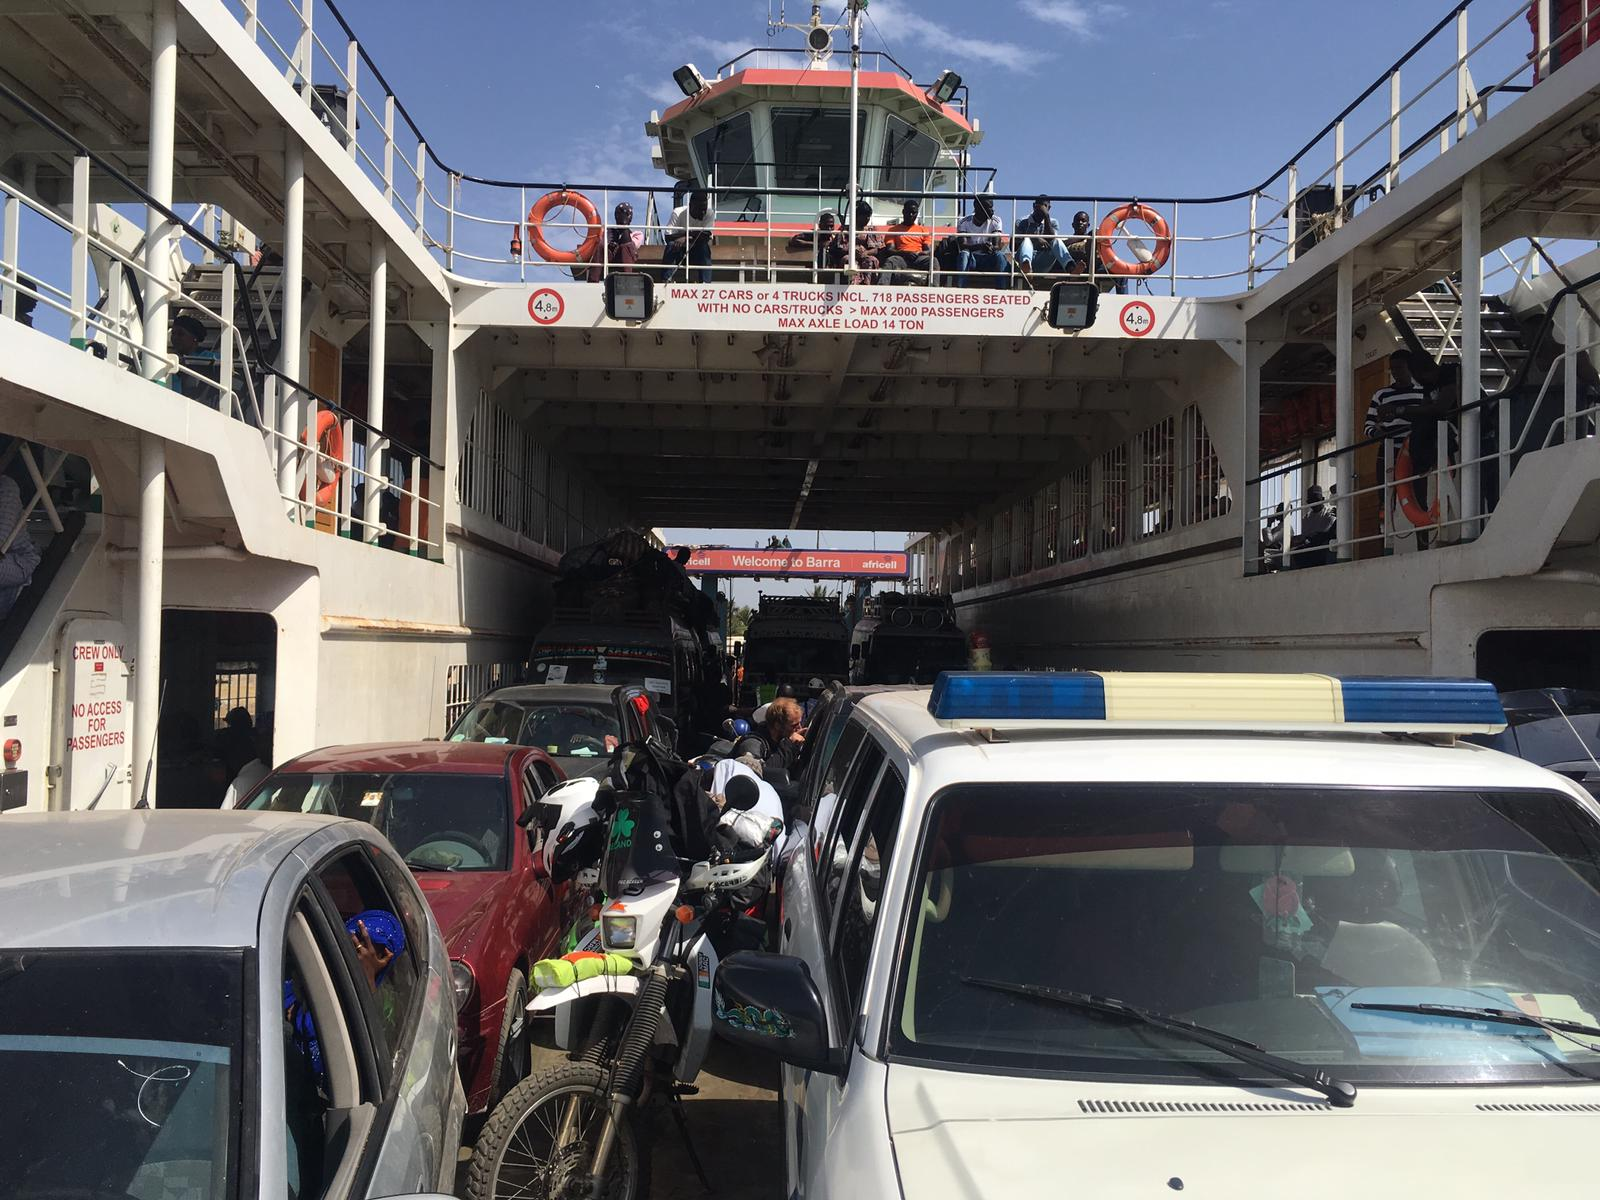 On board the Banjul-Barra ferry, The Gambia.